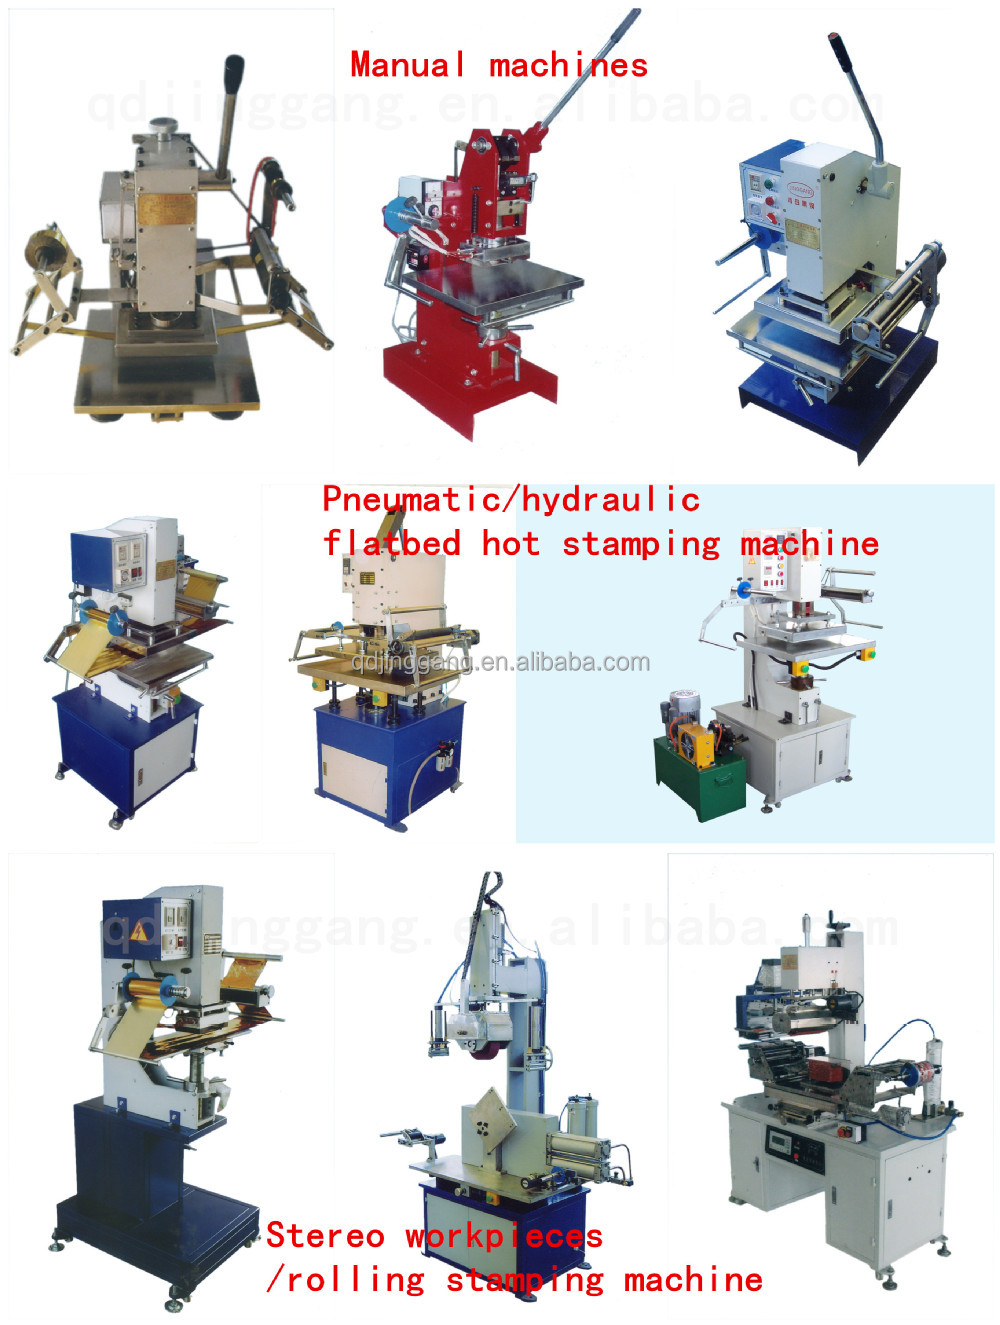 TJ-69 Hot foil stamping printing machine for Plastic Shopping Basket/Dustbin/ Bottle Tray